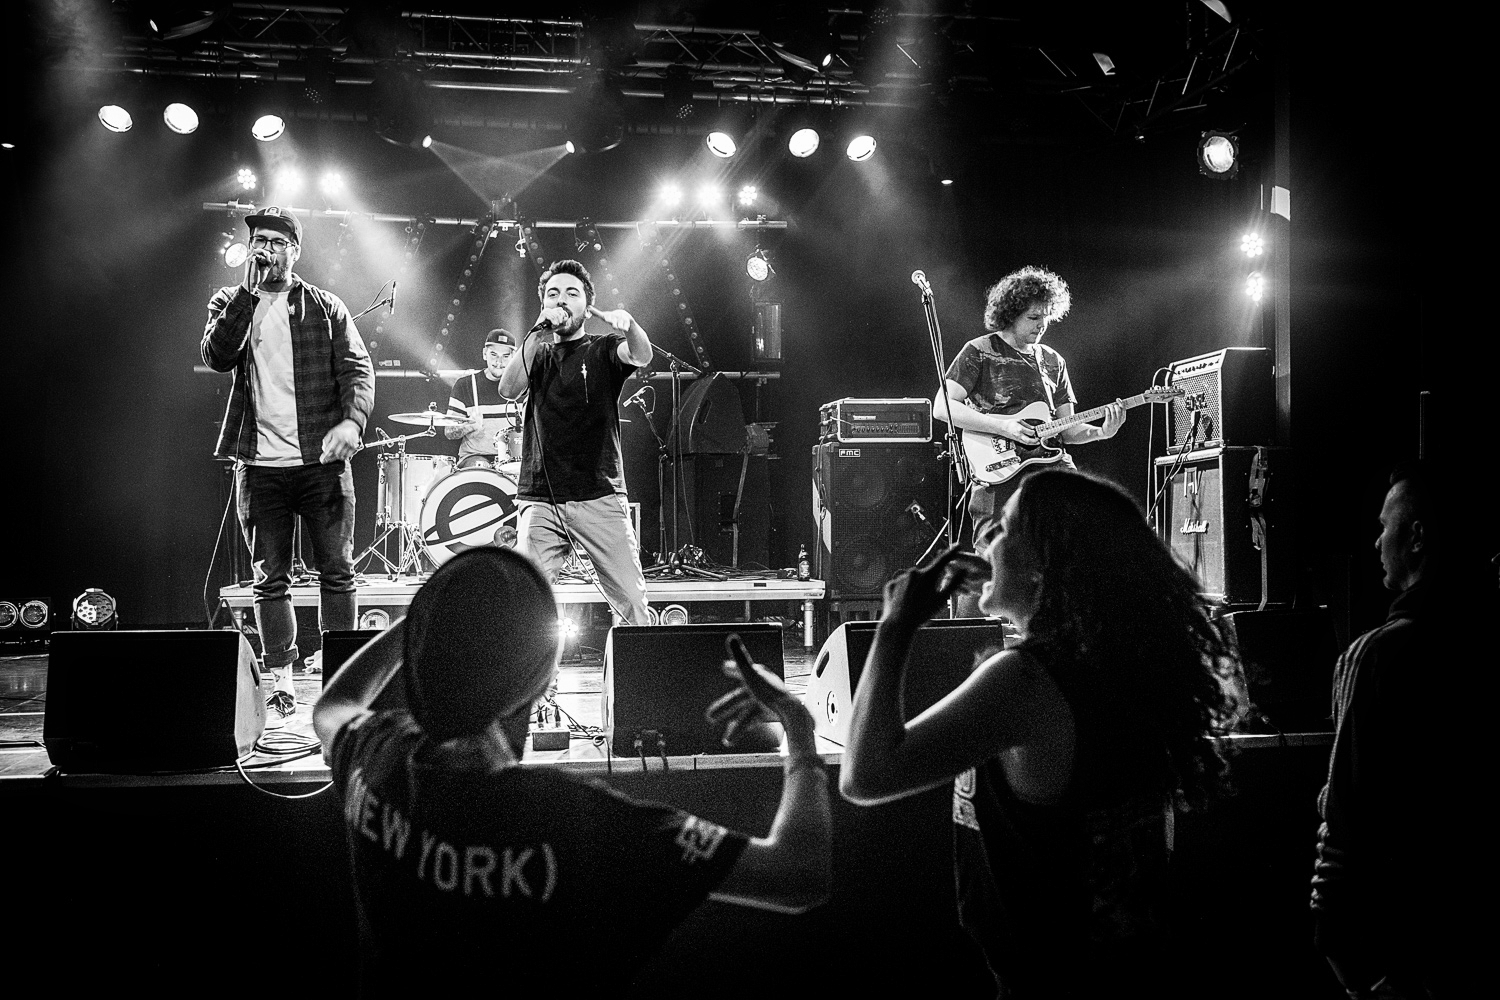 20190420-009-Sep-Julo-@-Represent-Festival-Reutlingen-Cred_Michael_Lamertz_@indie.and_.more_.jpg